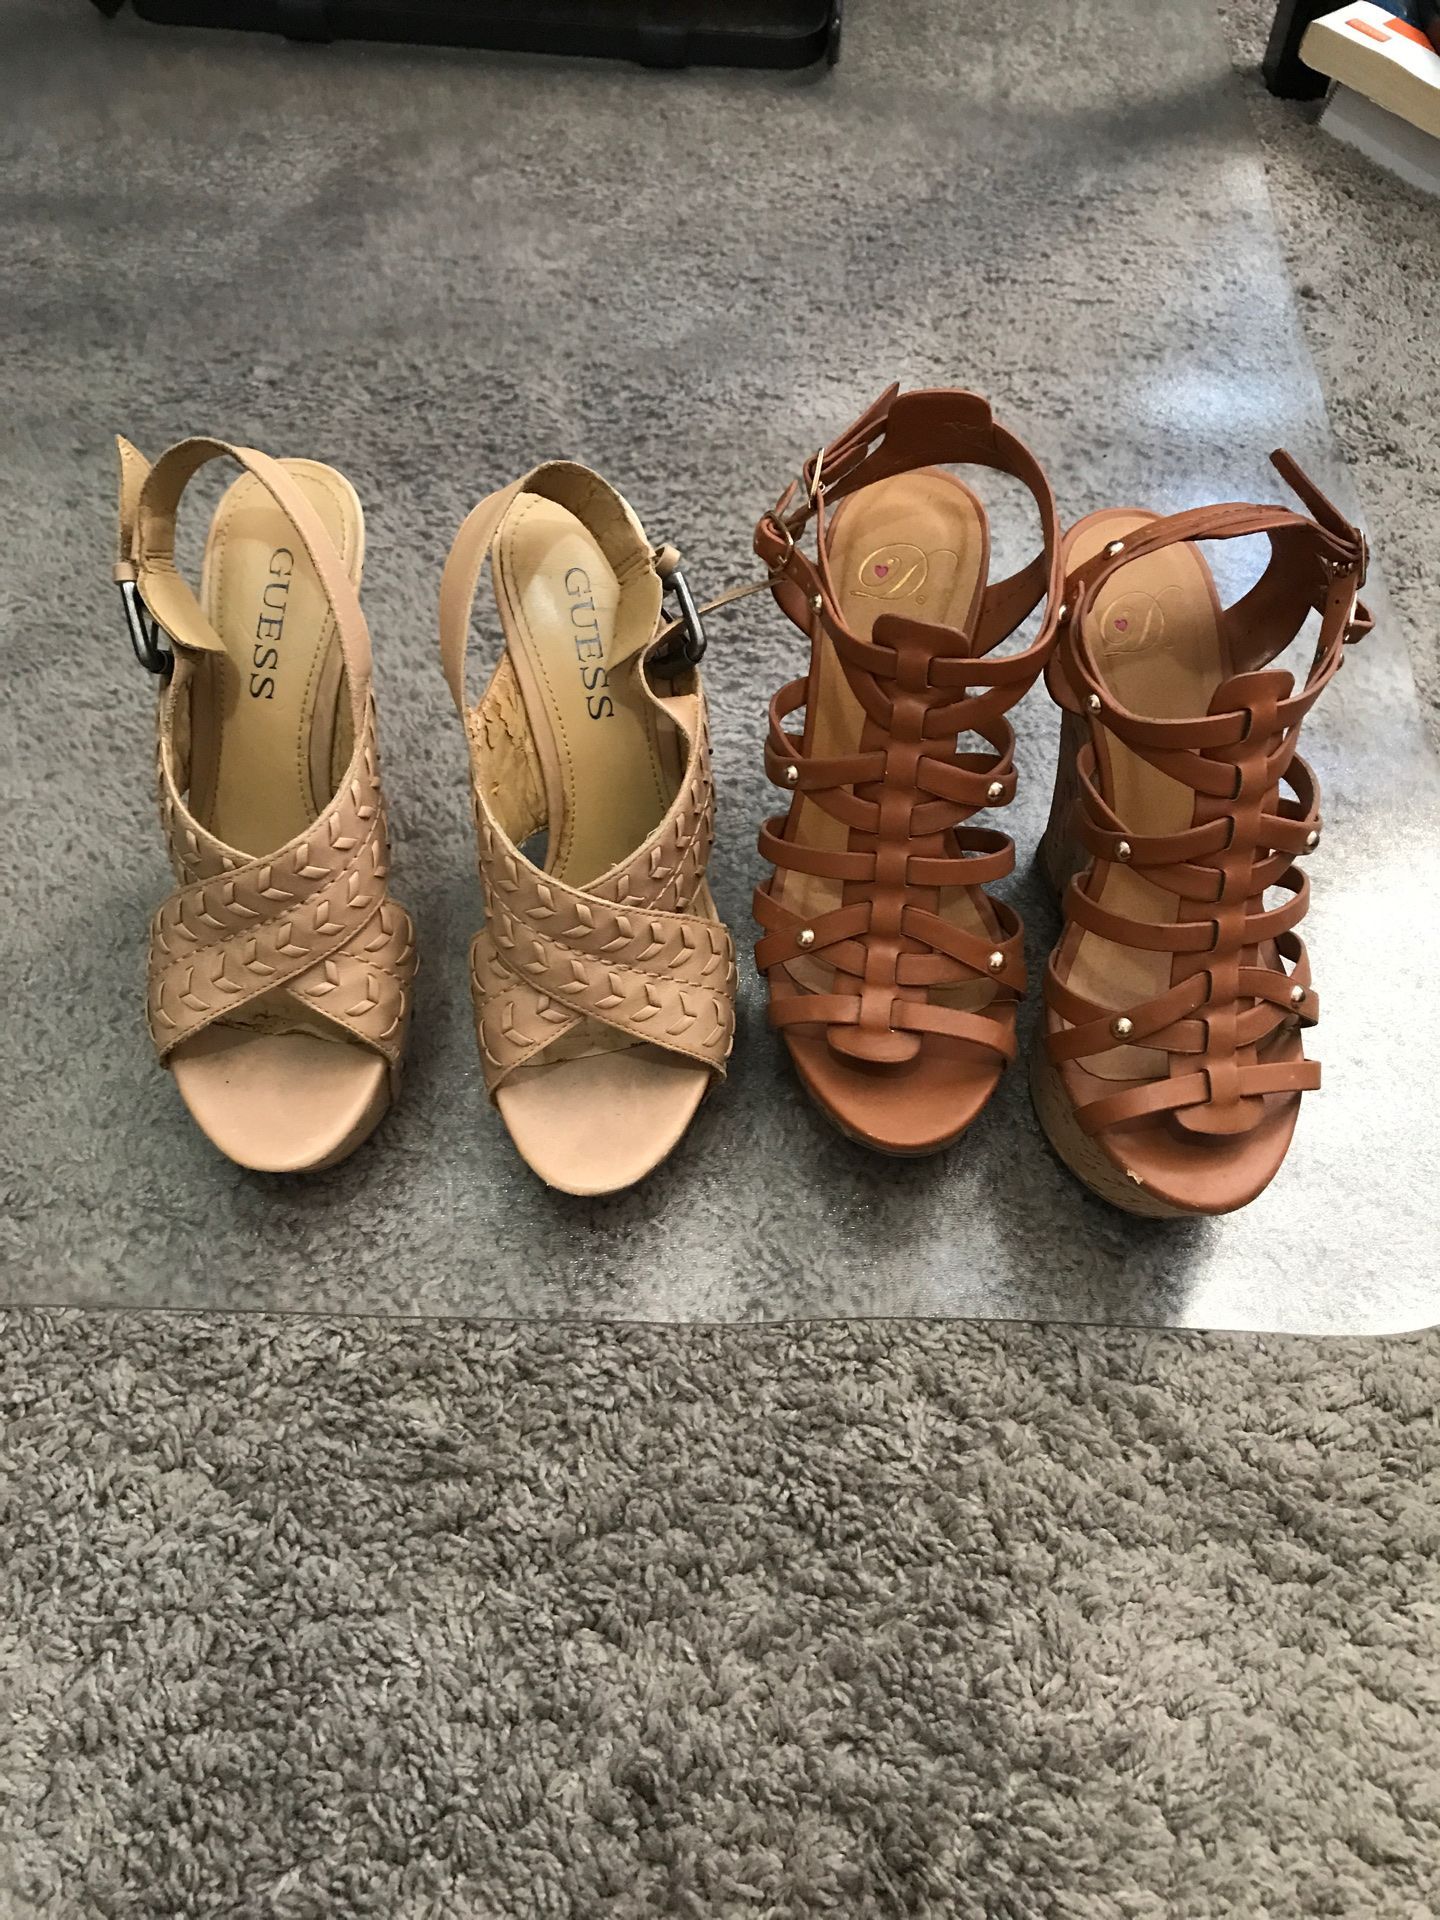 Size 6 Cute Wedges